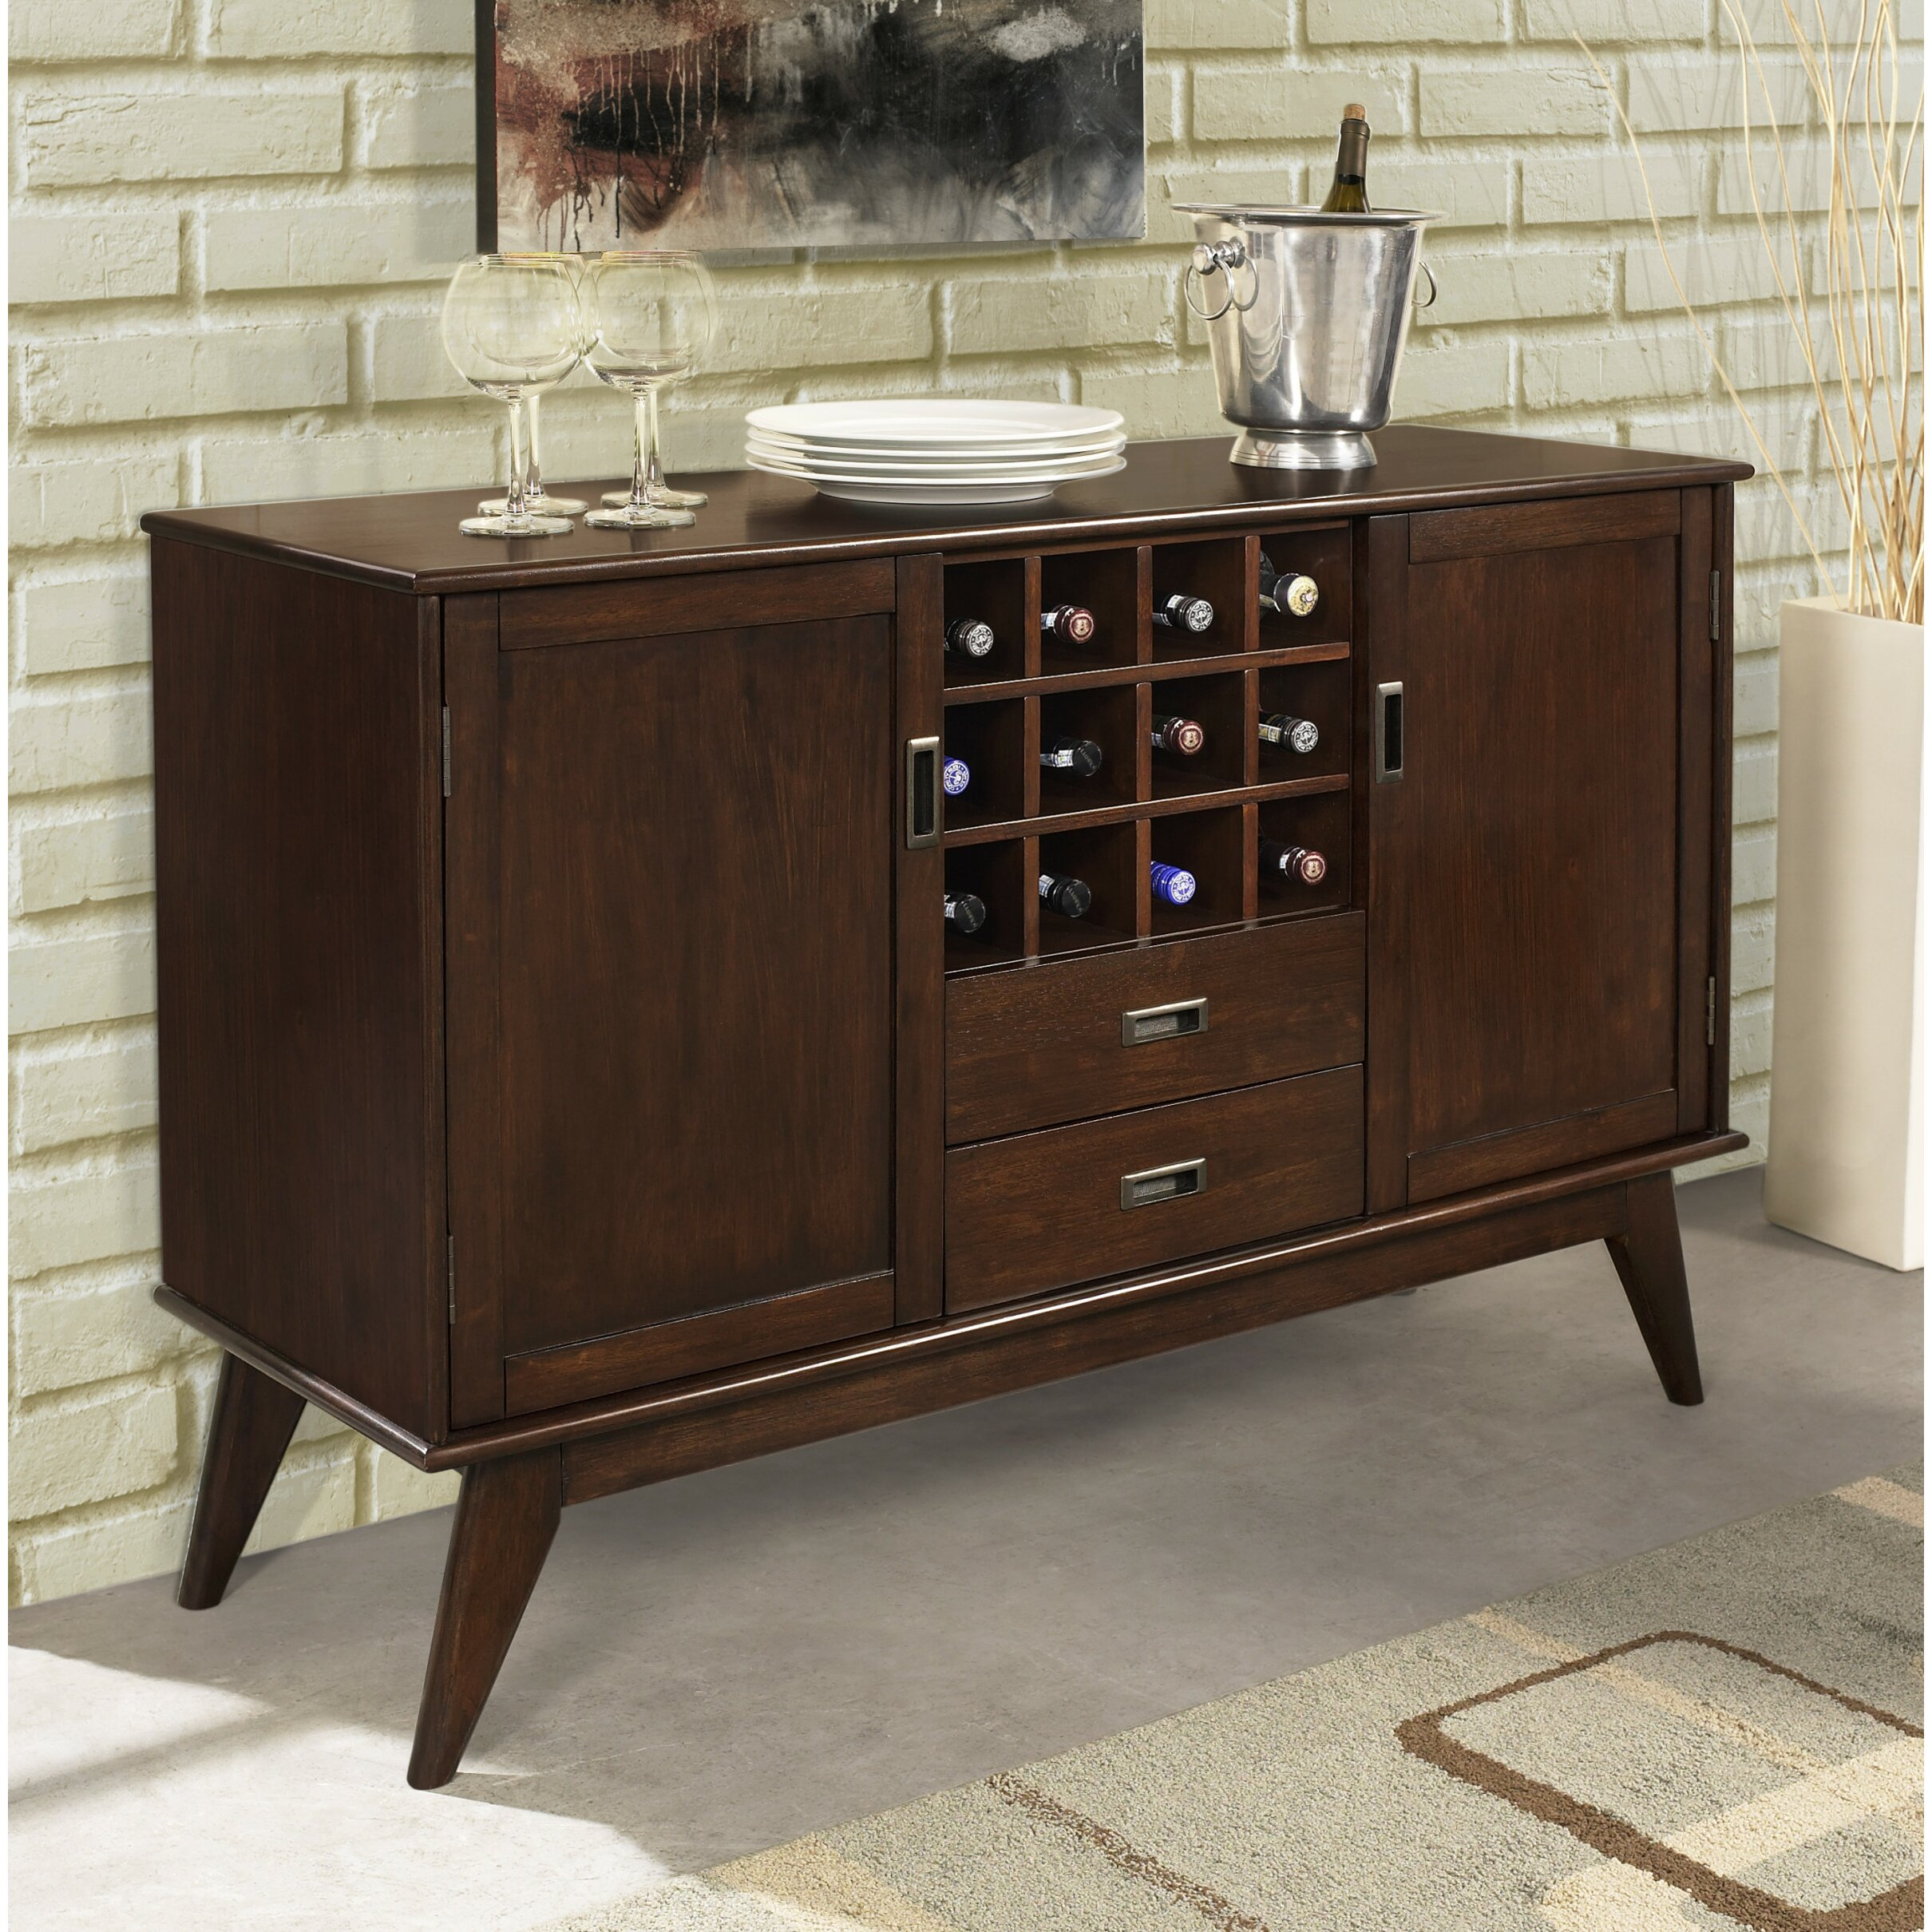 simpli home draper mid century sideboard buffet and wine. Black Bedroom Furniture Sets. Home Design Ideas